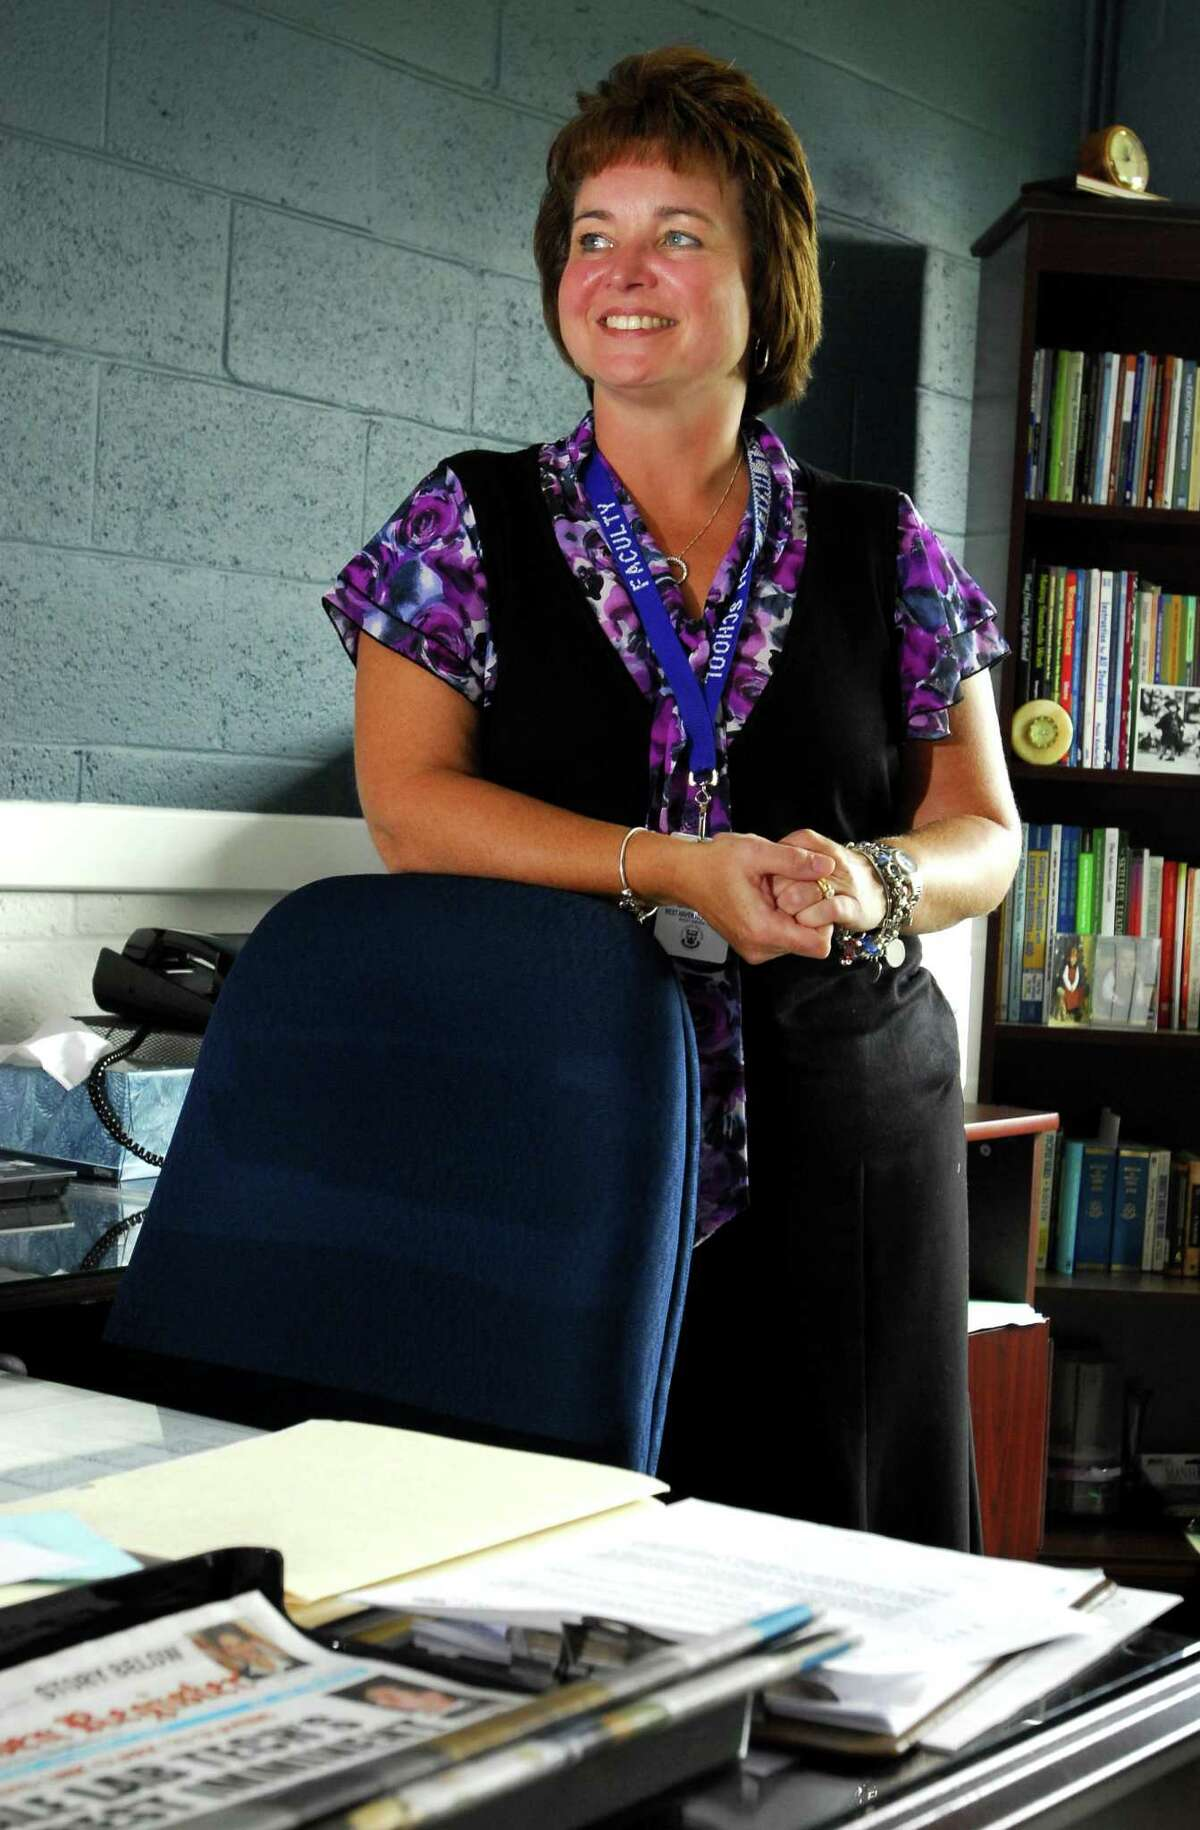 File photo by Peter Hvizdak - West Haven, Connecticut- September 18, 2009: Pamela Bellmore Gardner when she took over as West Haven High School principal. Gardner died Thursday after a 16-month battle with a rare form of cancer, neuroendocrine tumors in her stomach.